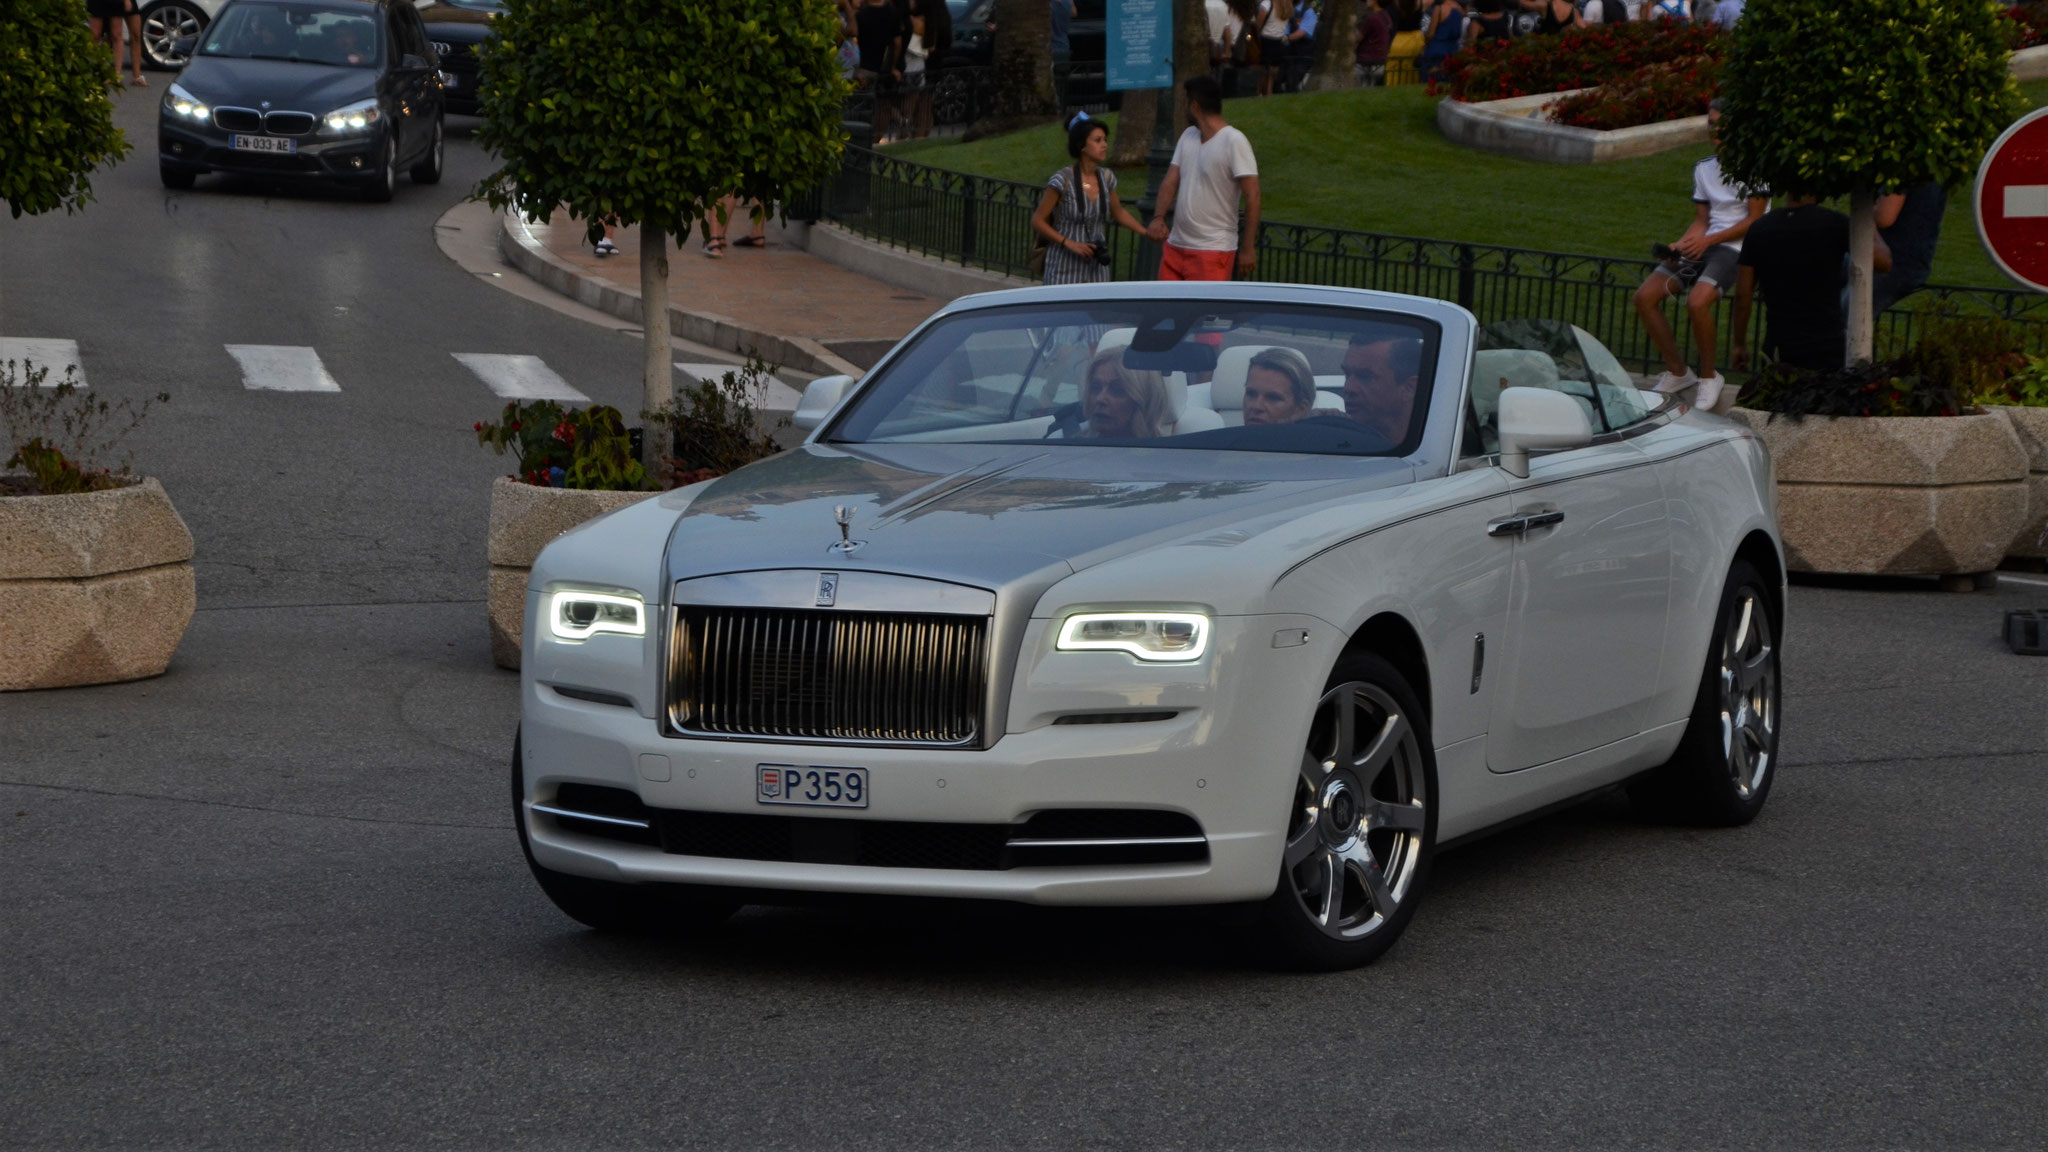 Rolls Royce Dawn - P359 (MC)